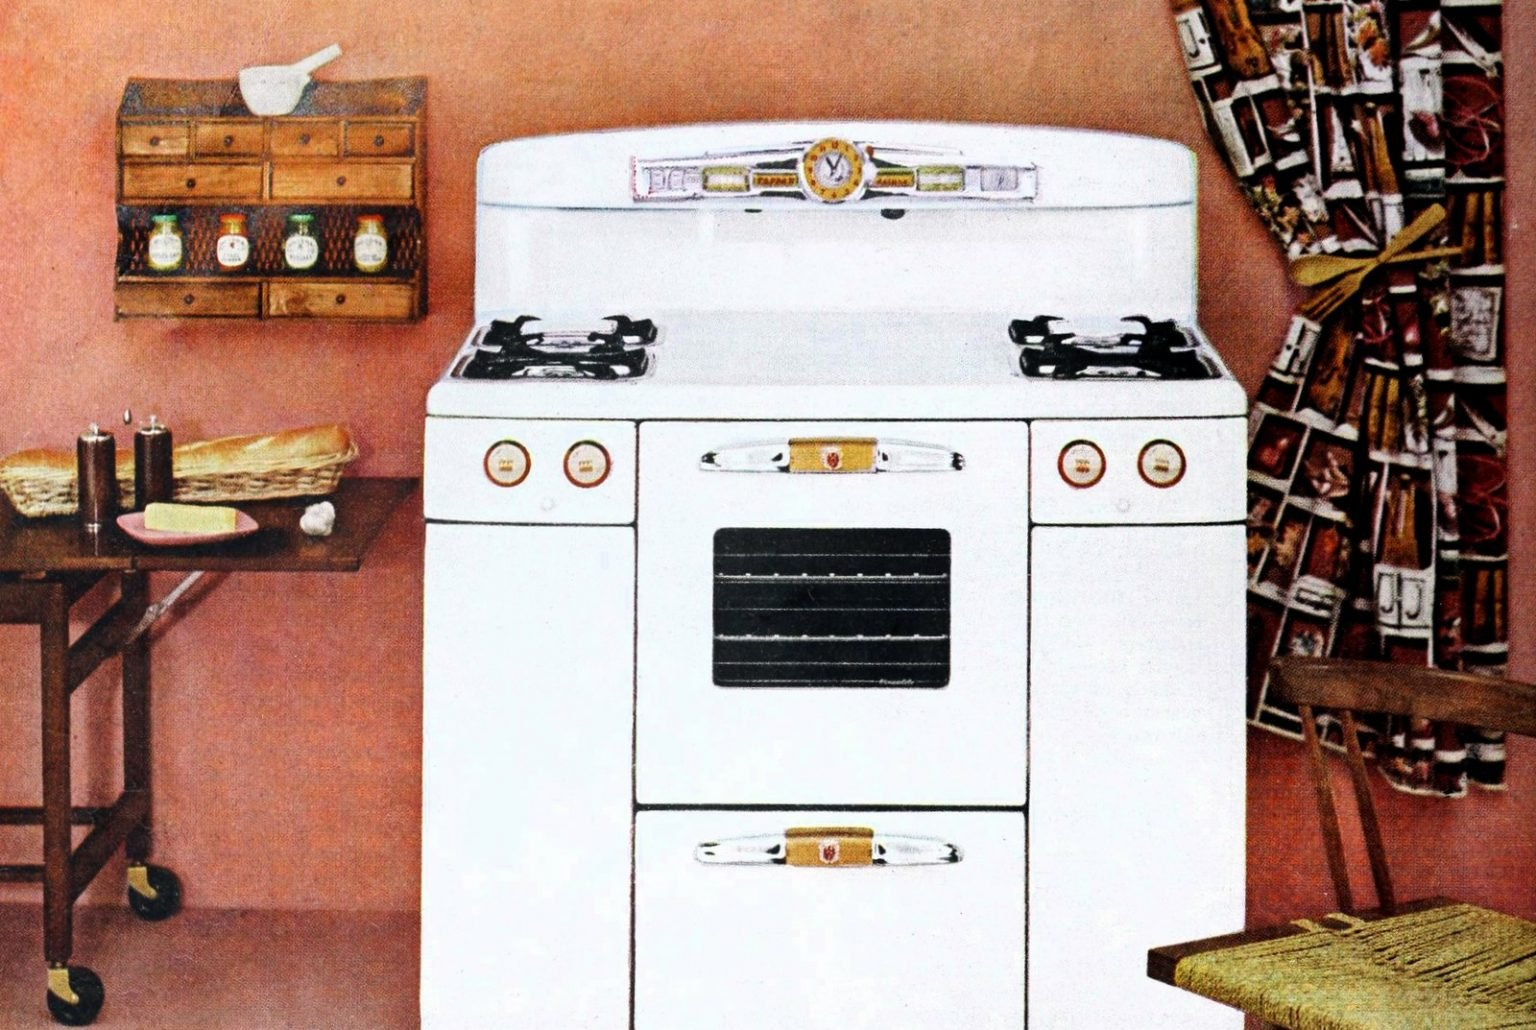 What old-fashioned gas ranges in 1950s kitchens were like